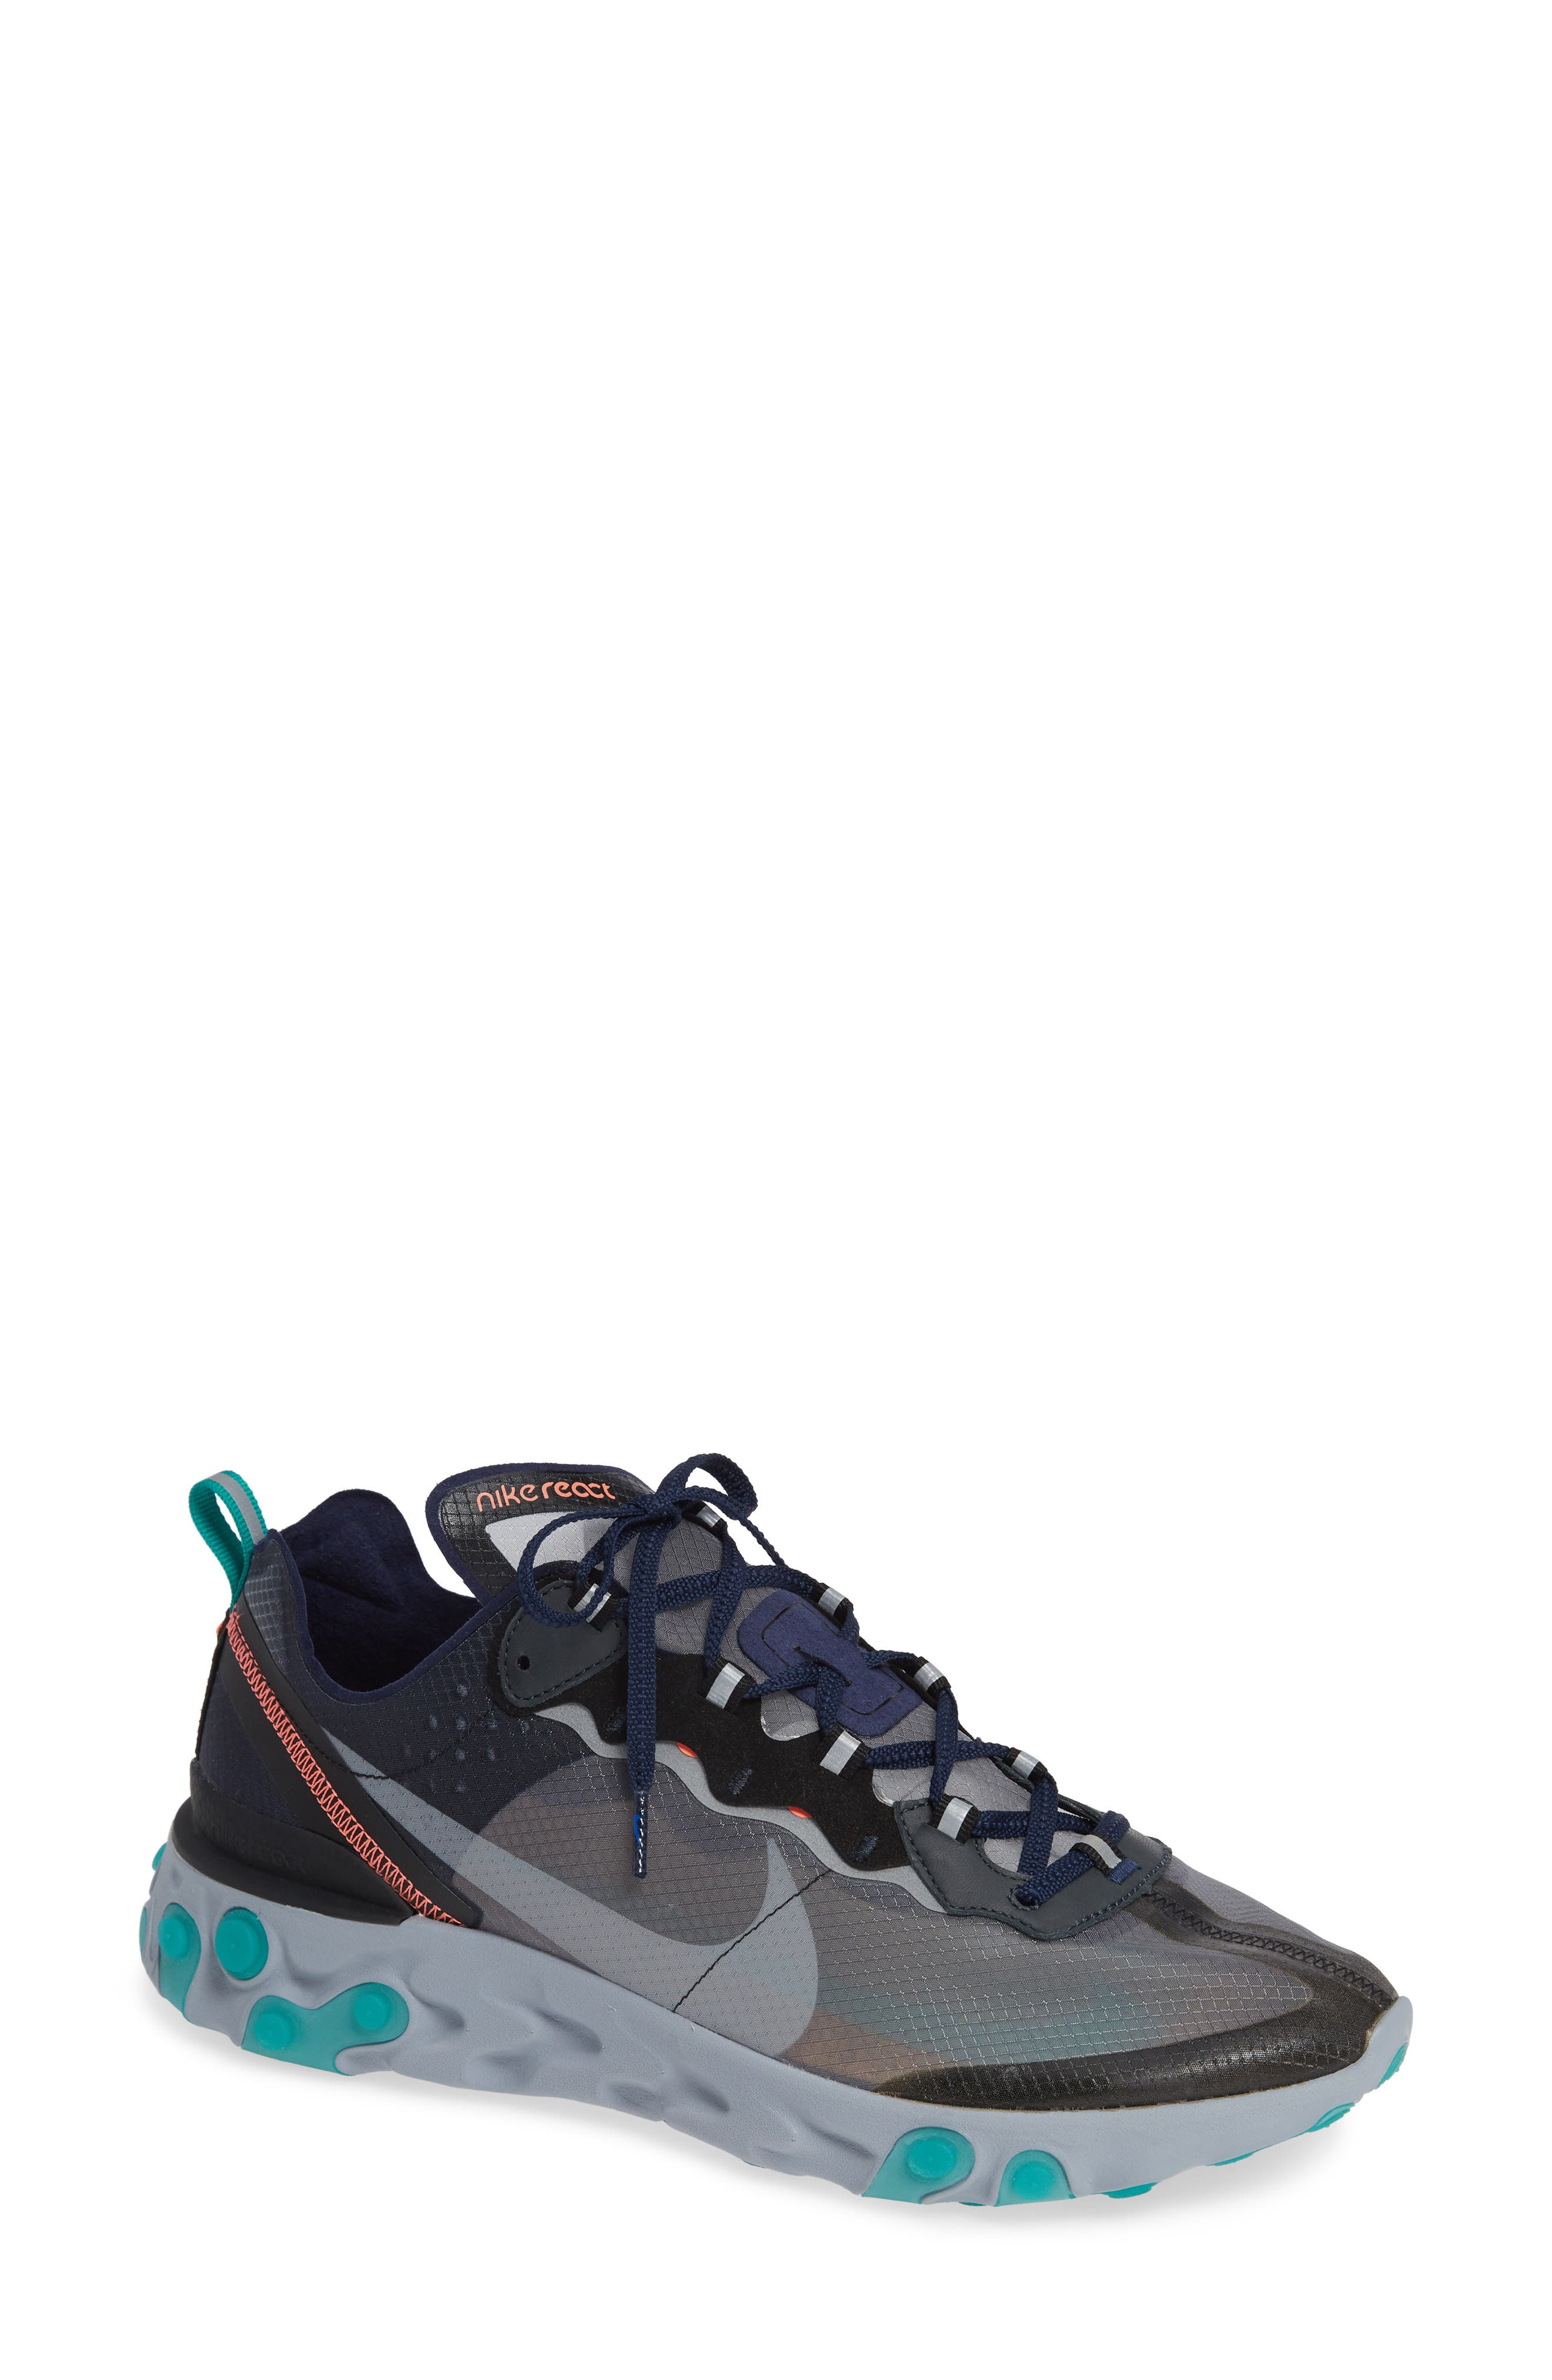 React Element 87 Sneaker,                             Main thumbnail 1, color,                             BLACK/ MIDNIGHT NAVY/ GREEN